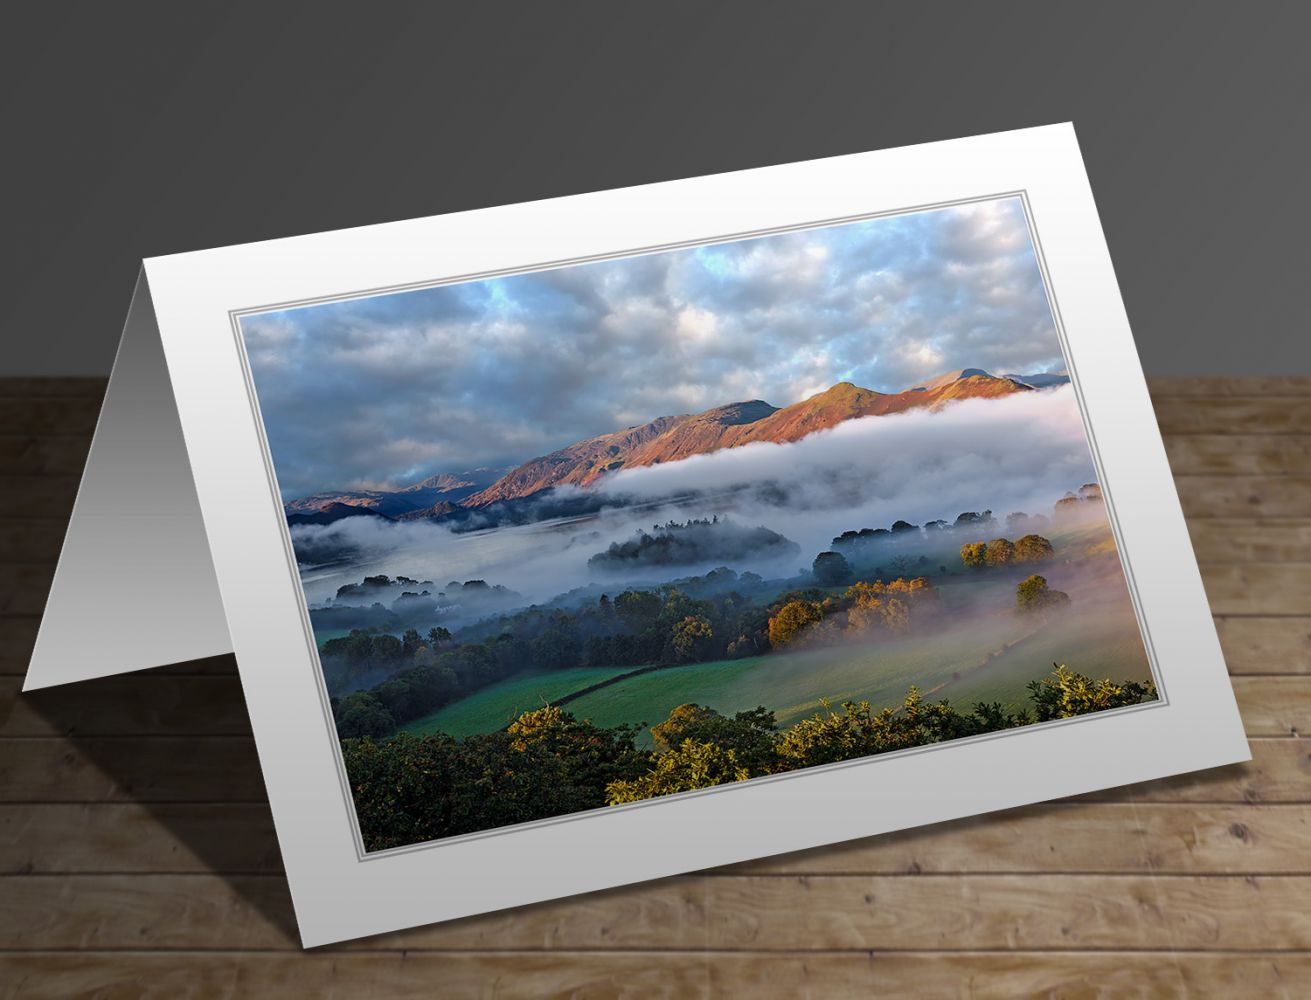 A greetings card containing the image Mists over Derwentwater and Catbells by Martin Lawrnce